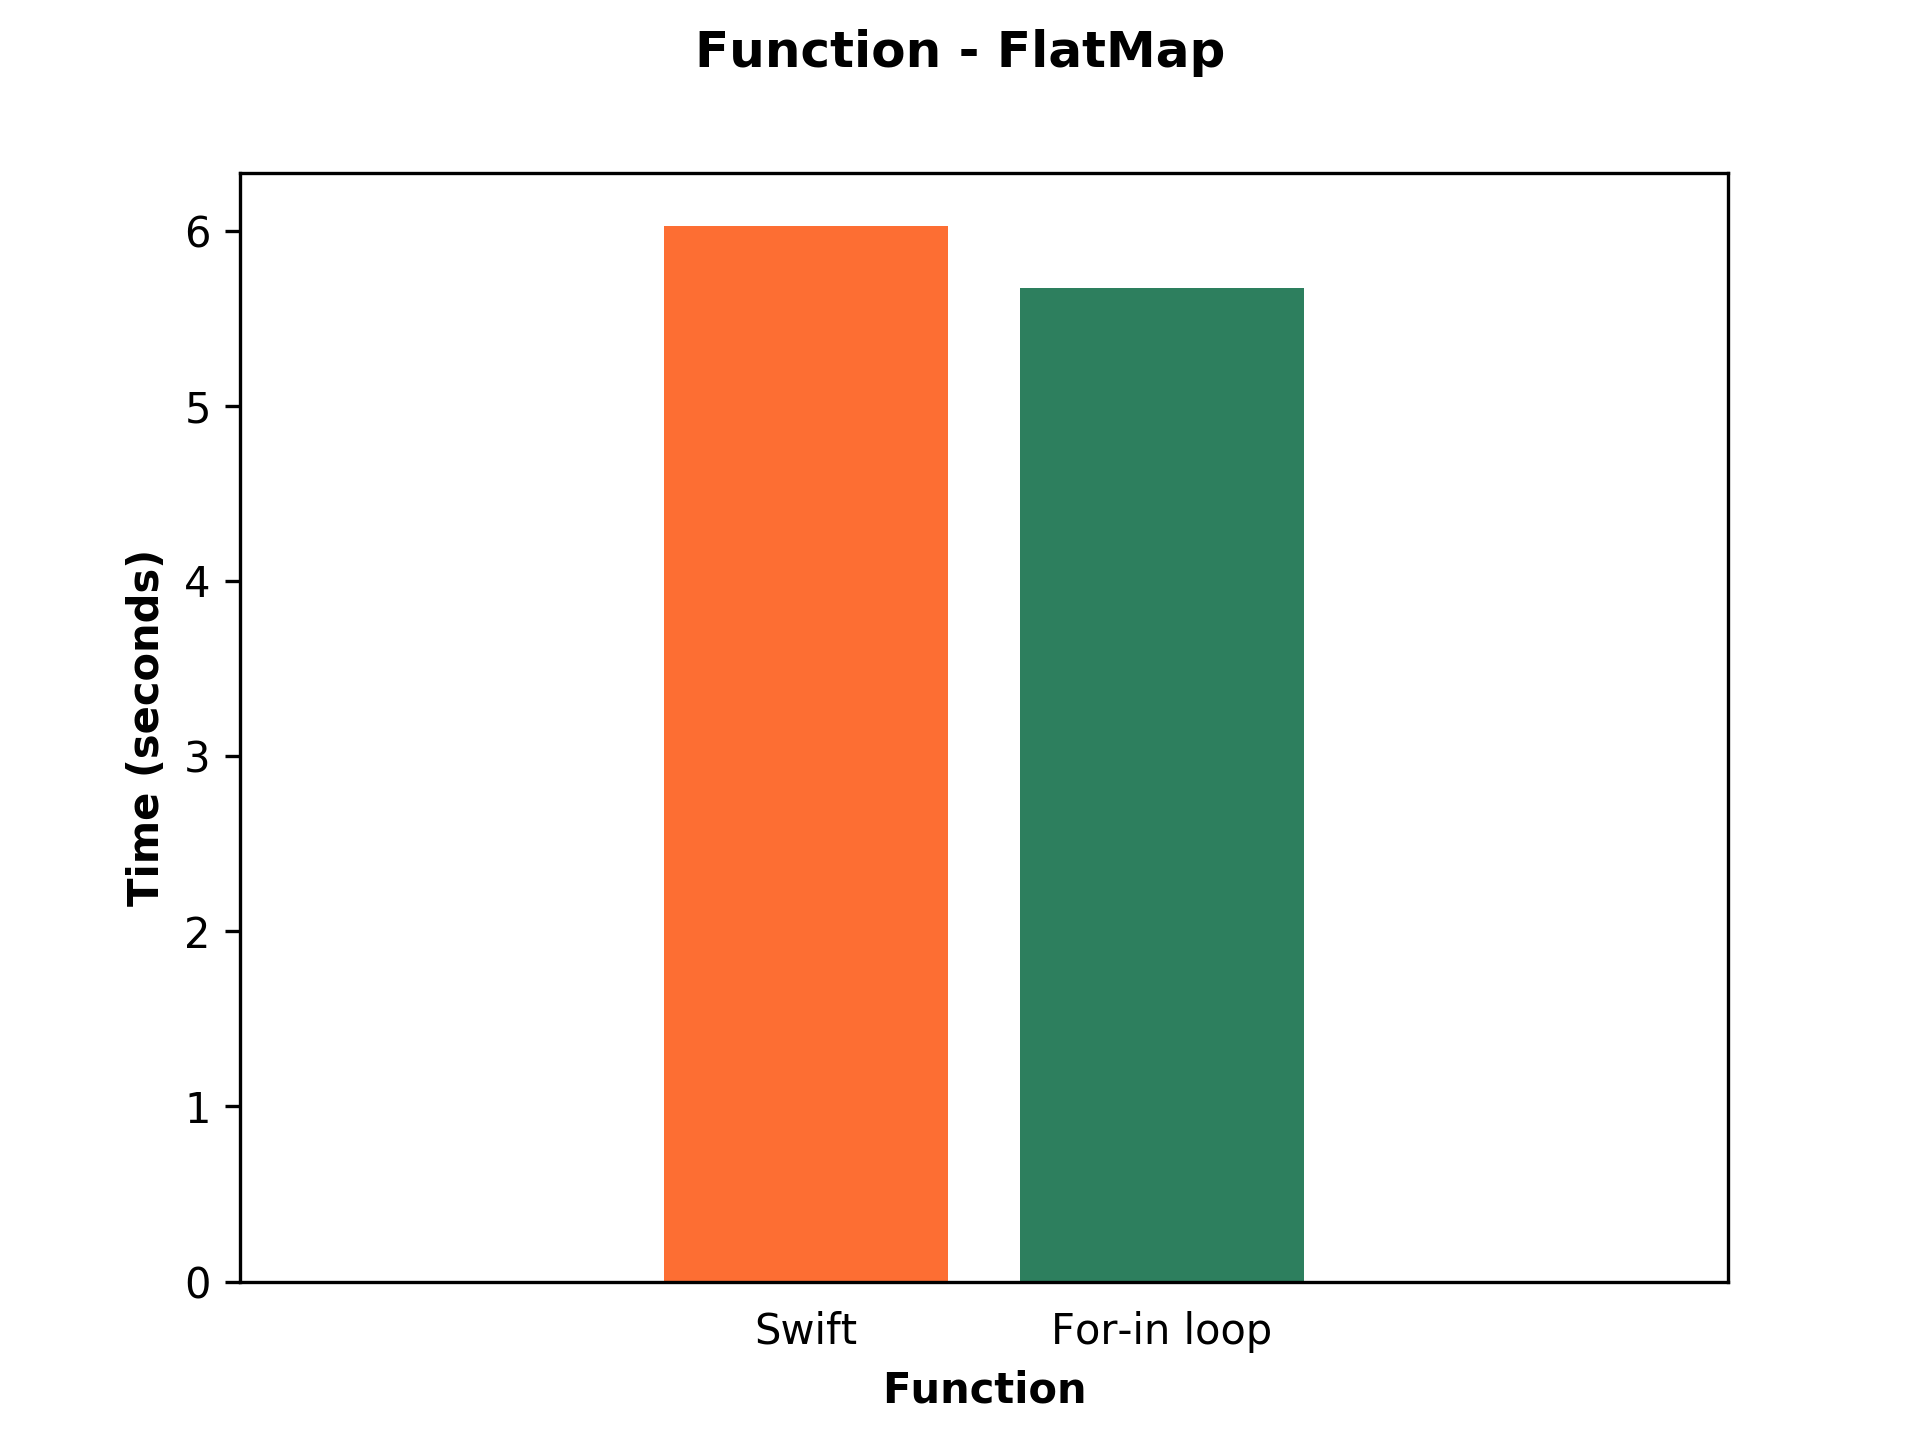 ar chart shows performance of Swift and For-in loop of flatmap function.